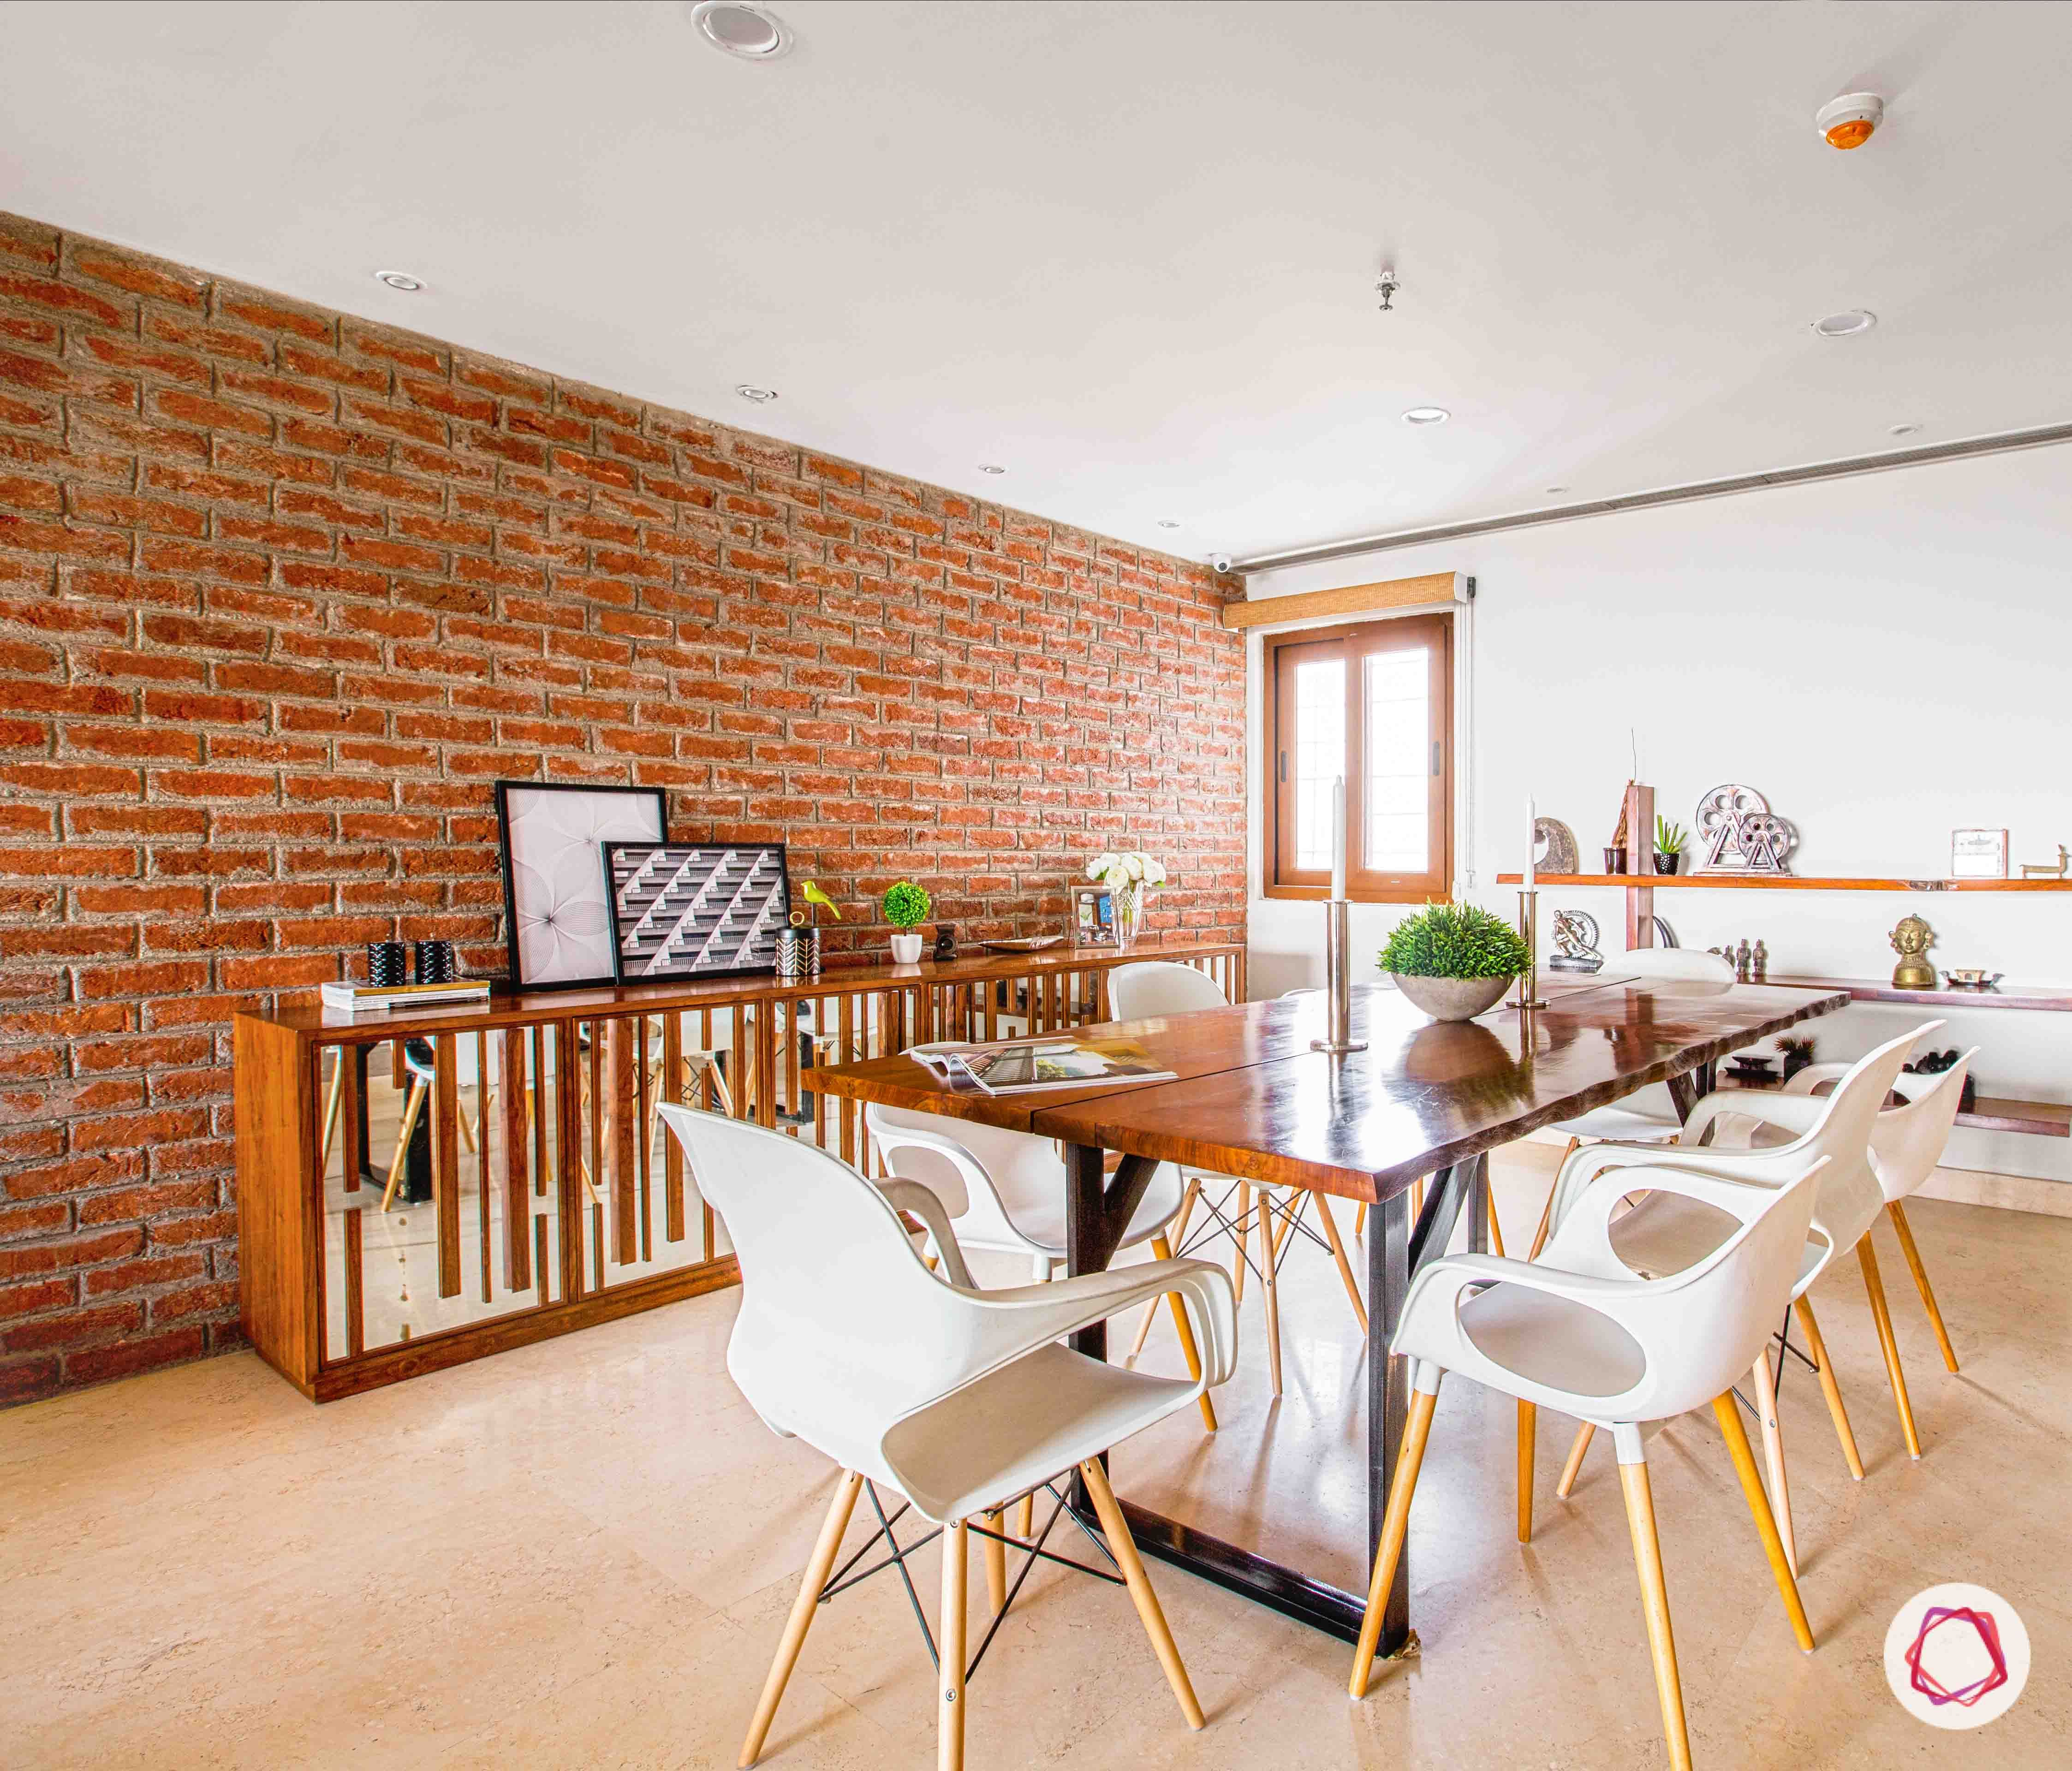 Industrial Style Dining Room  Exposed Brick Walls, Contemporary Chairs